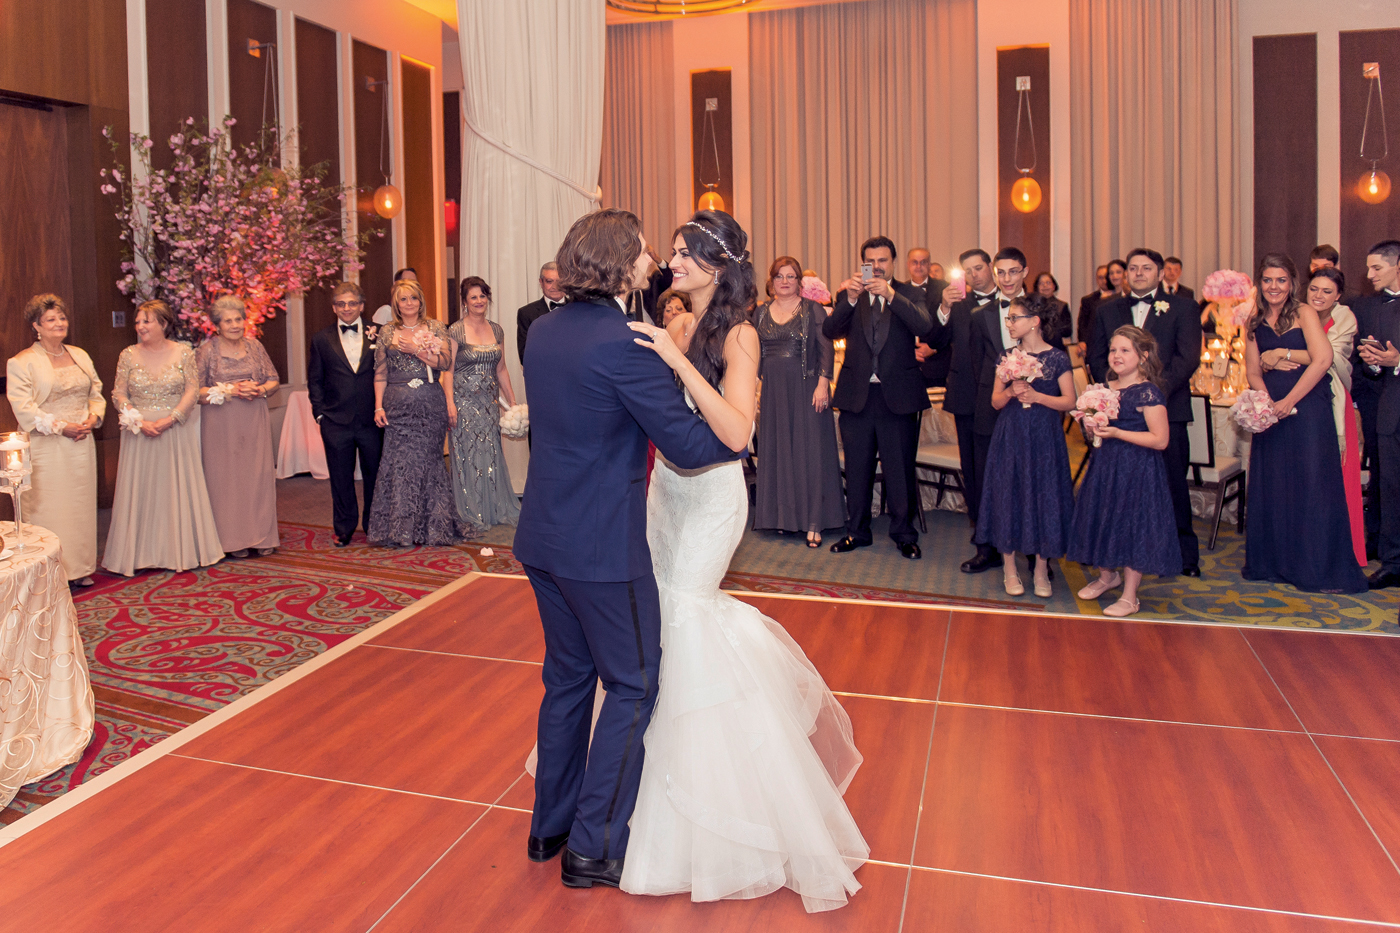 Maria & Mariano Real Wedding at Eventi Hotel in NYC